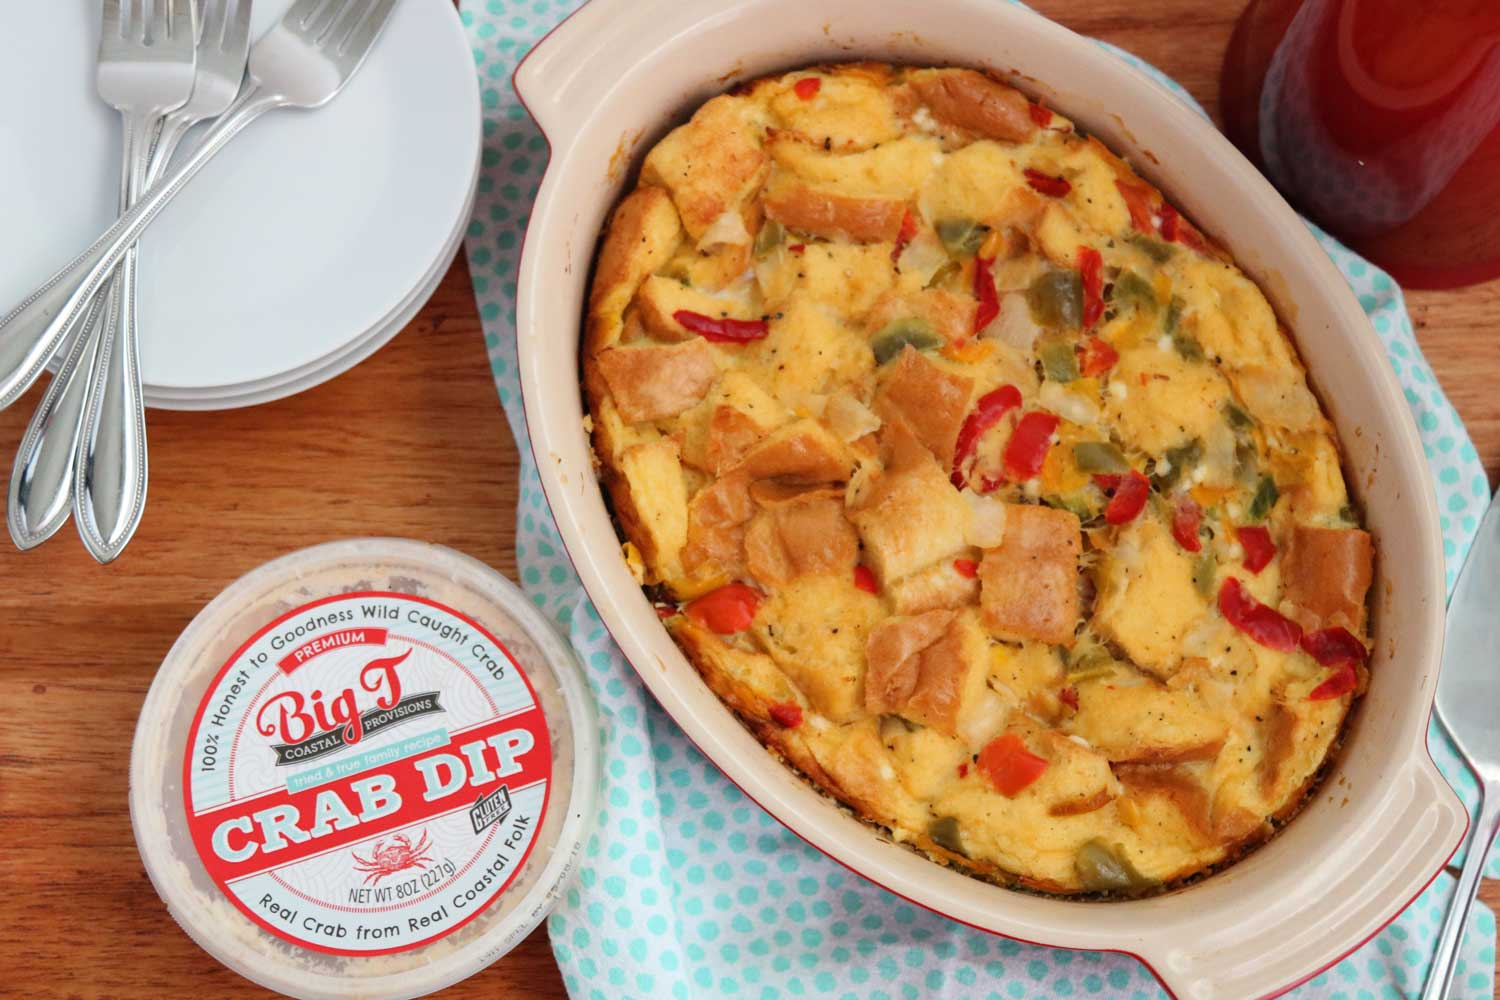 recipes-Crab-Red-Pepper-Breakfast-strata.jpg